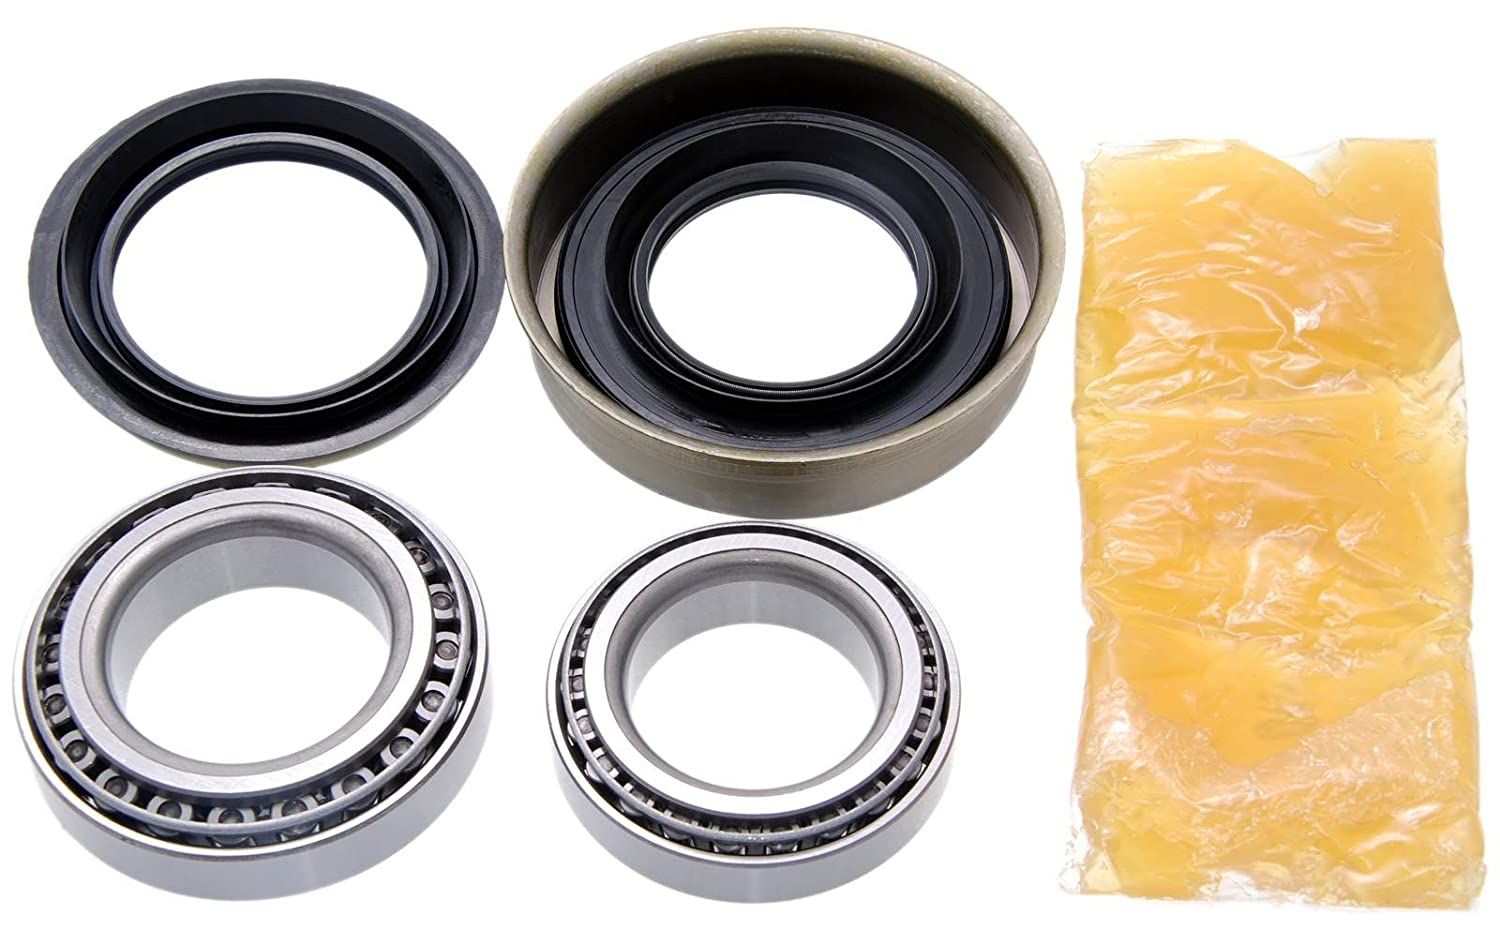 Febest 4021550W00 Roller Bearing Kit Front Axle Shaft For Nissan